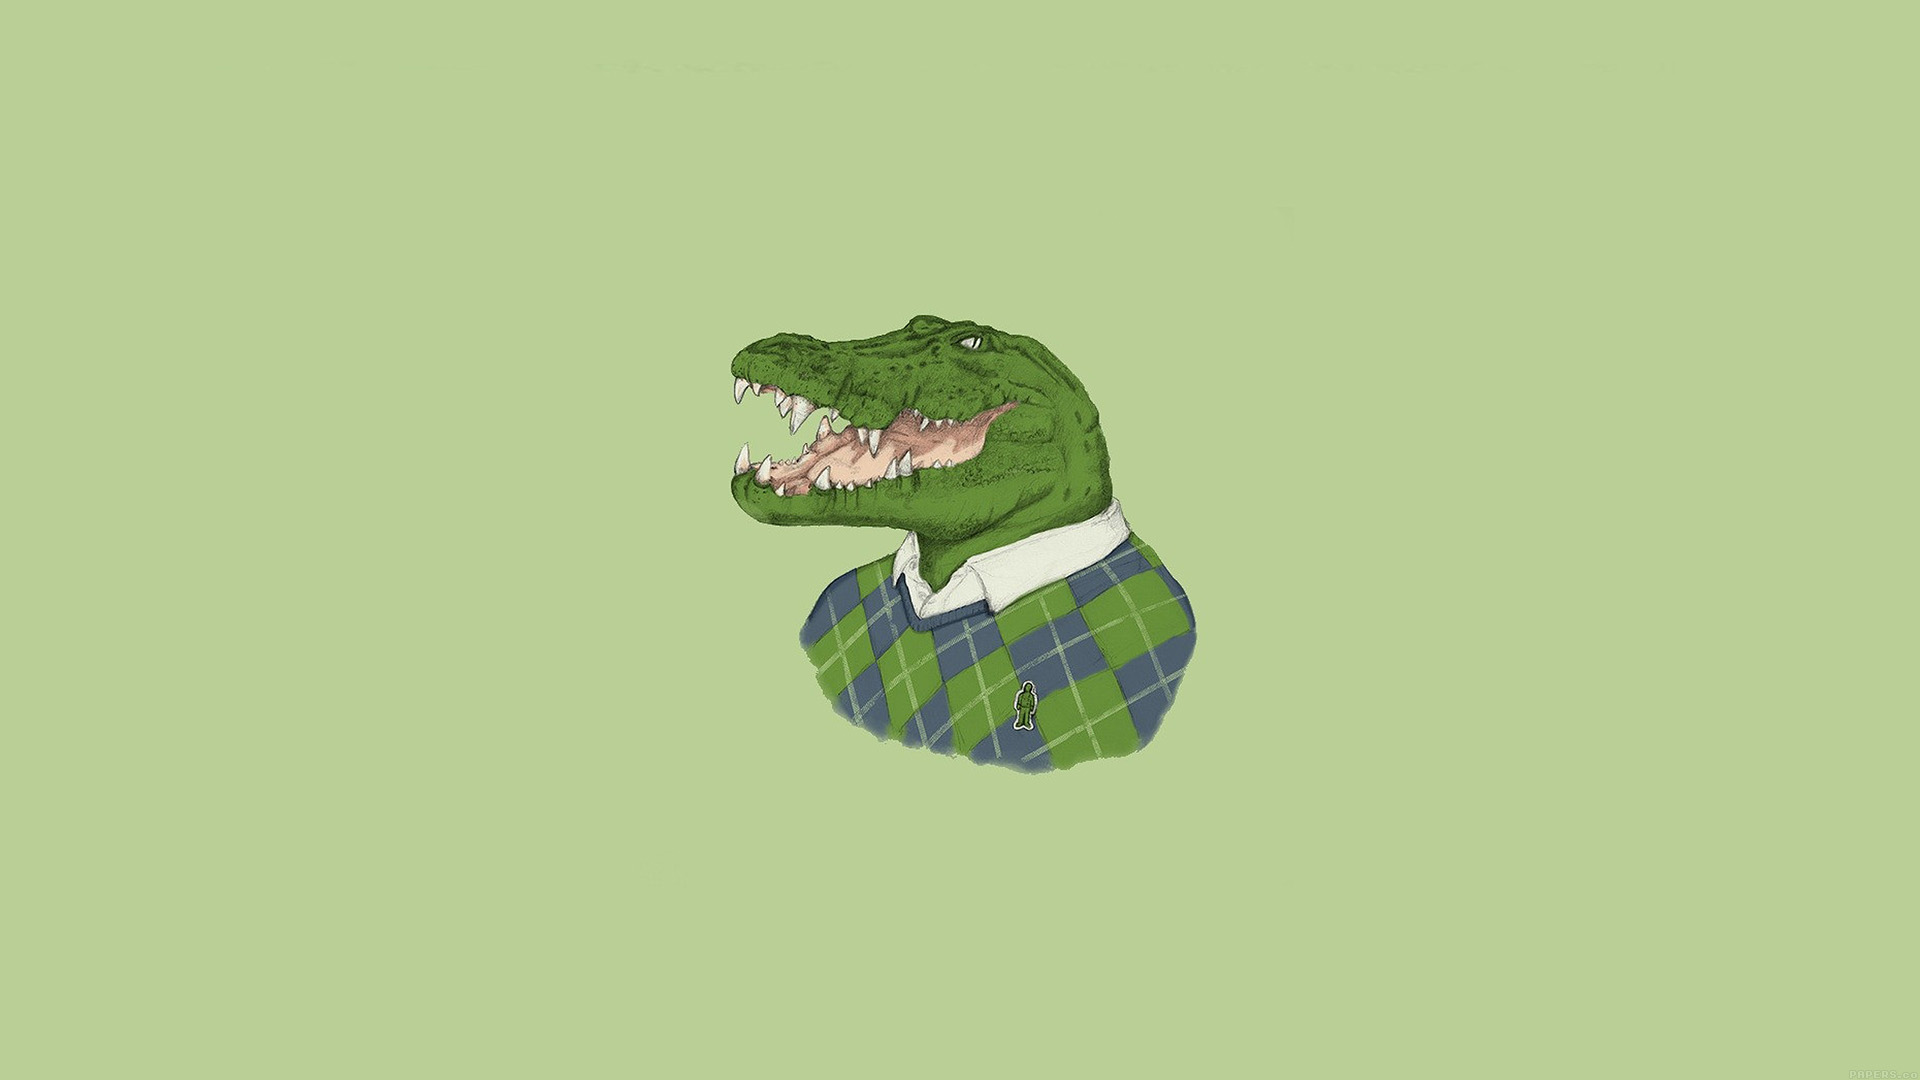 lacoste branding project paper